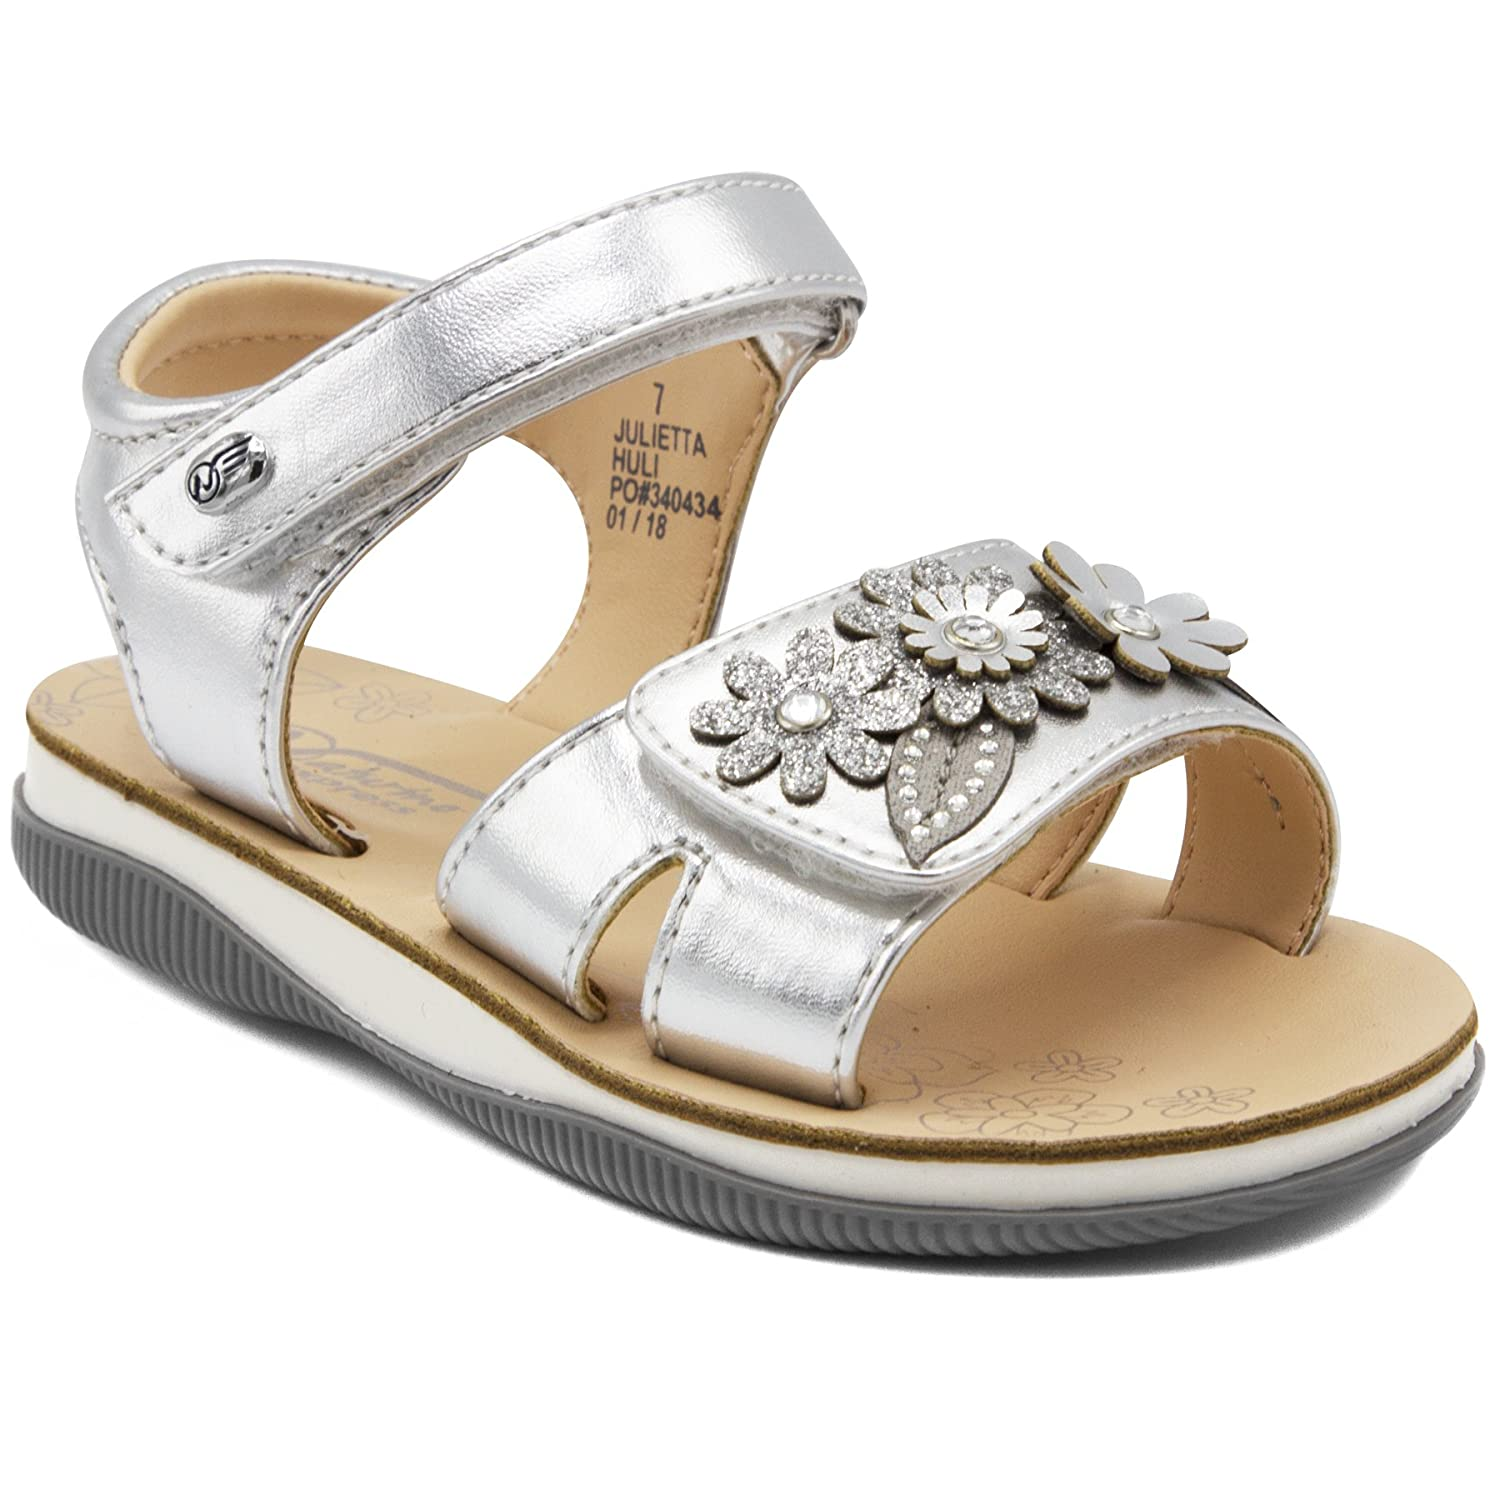 Naturino Express Julietta Kids Girls Toddler Velcro Sandal With Flower Ornament by Naturino Express